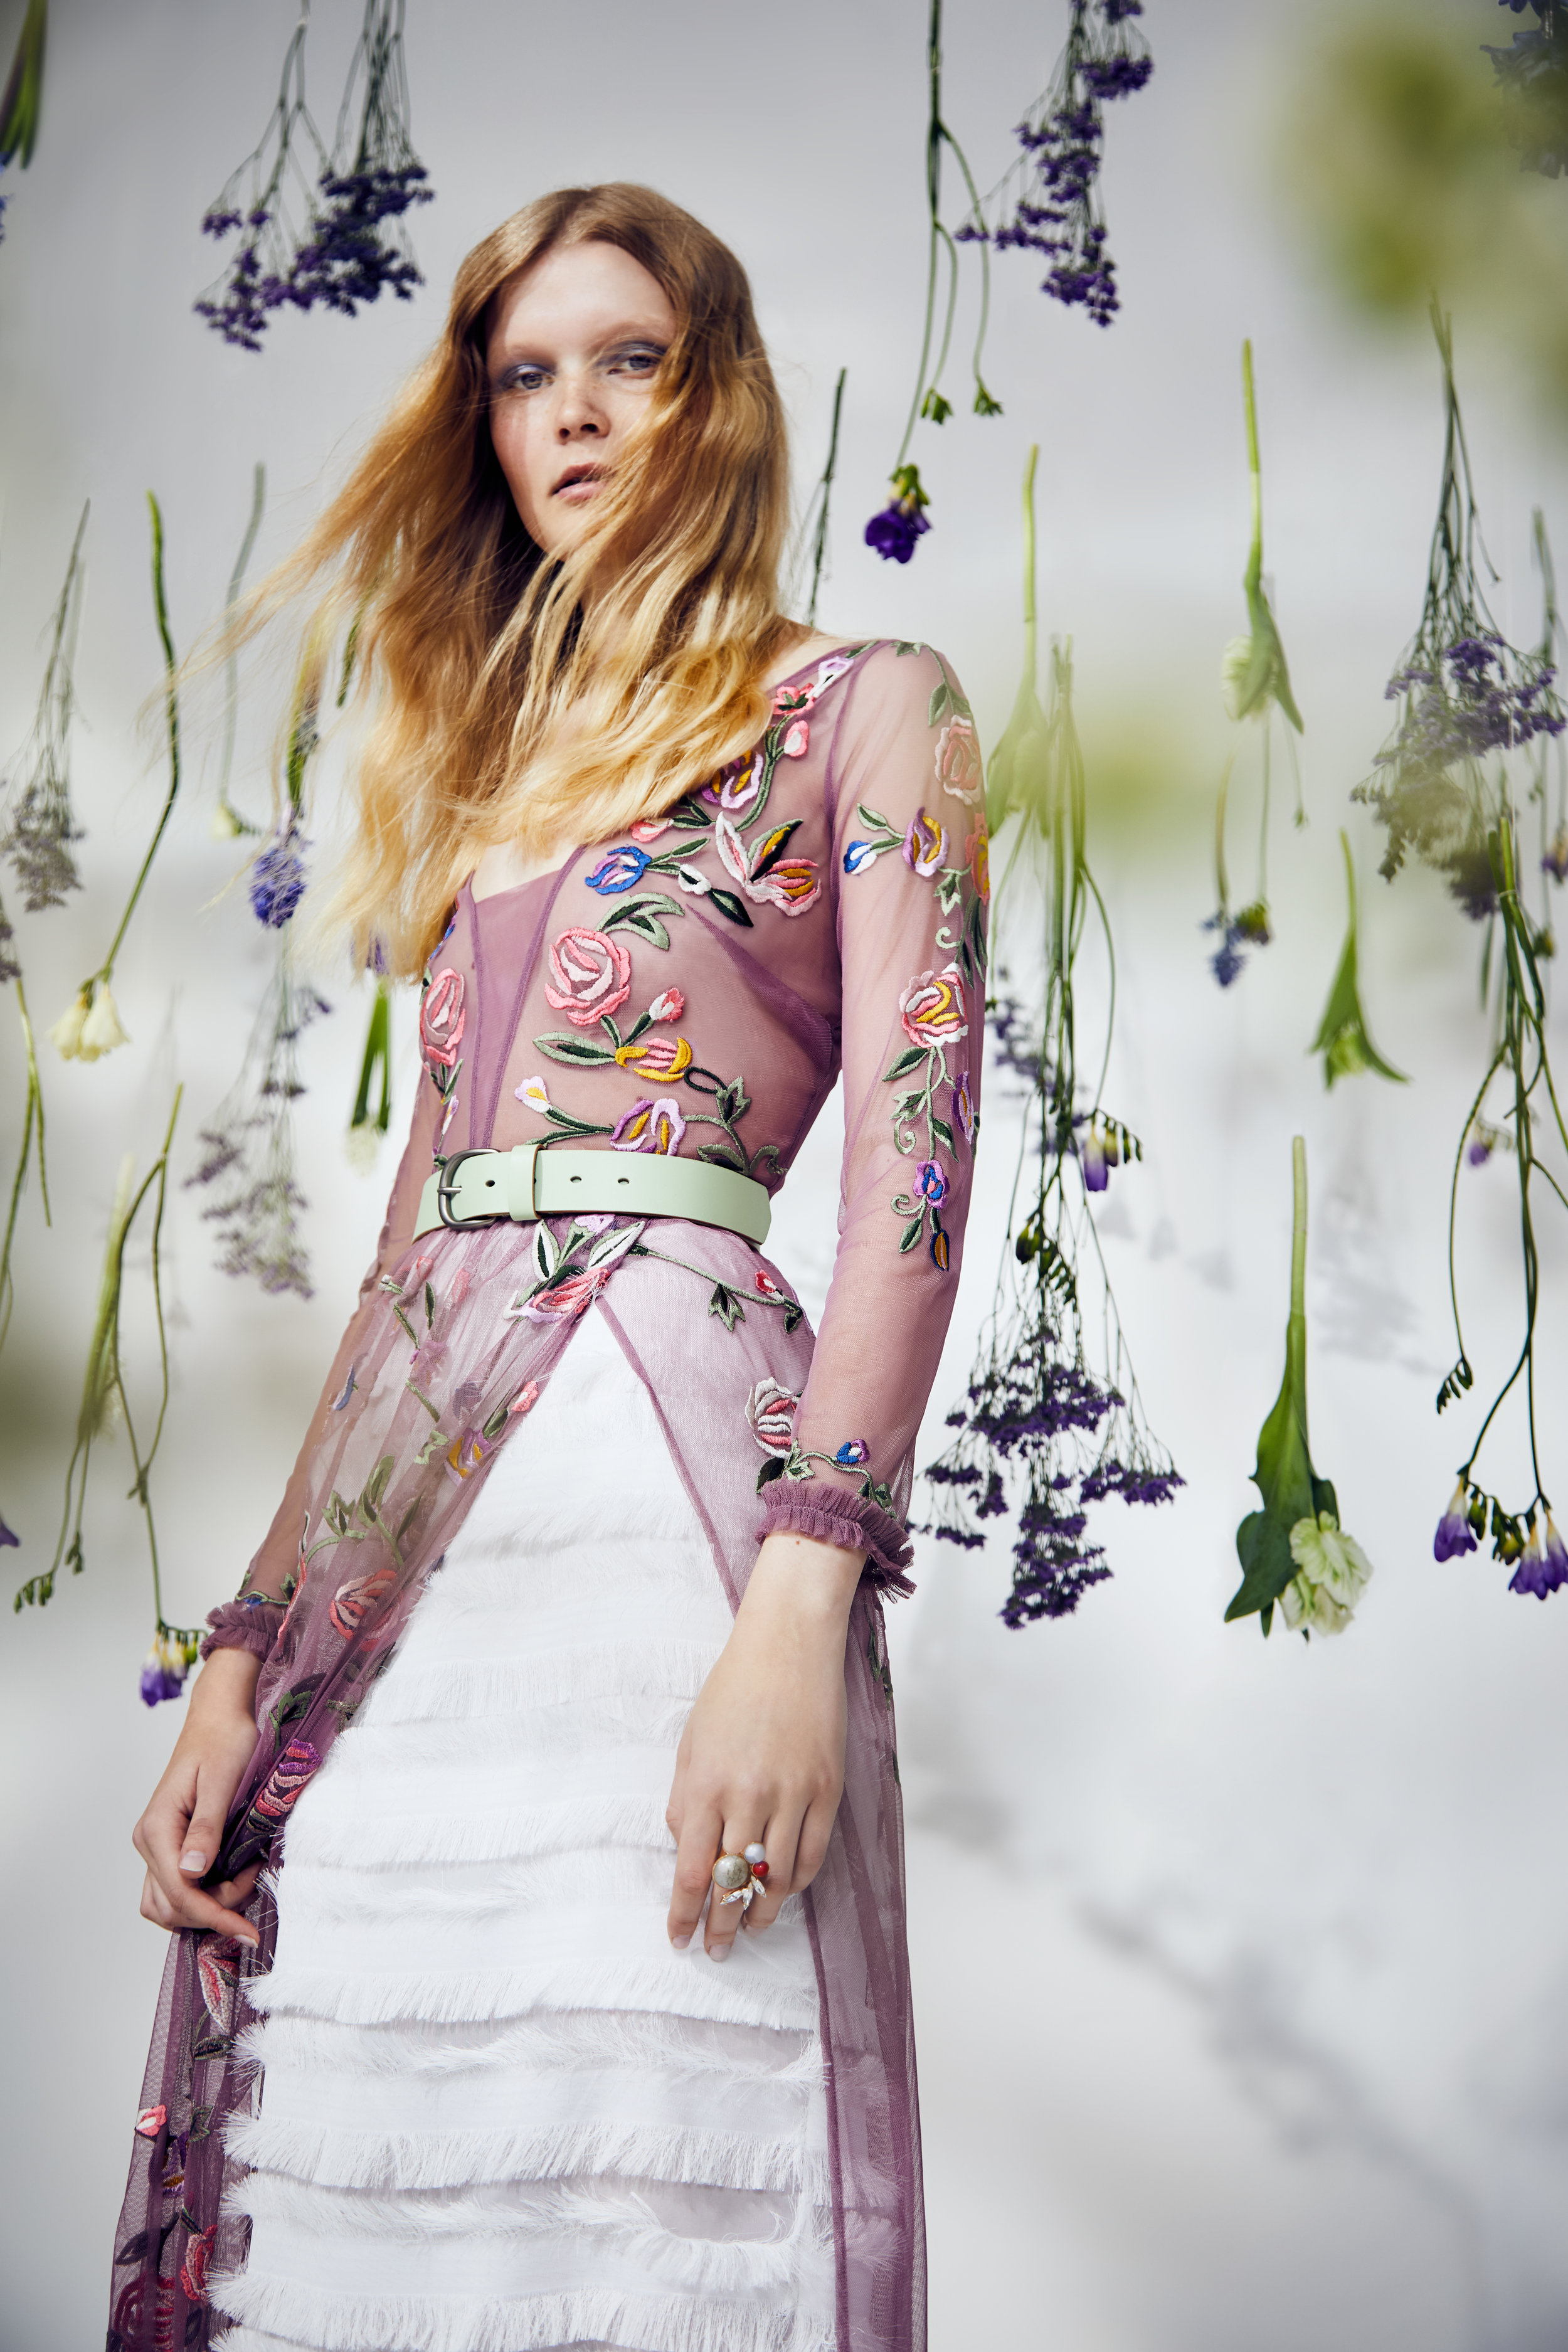 CW_12_Garden_Party_outfit_023253_retouch.jpg